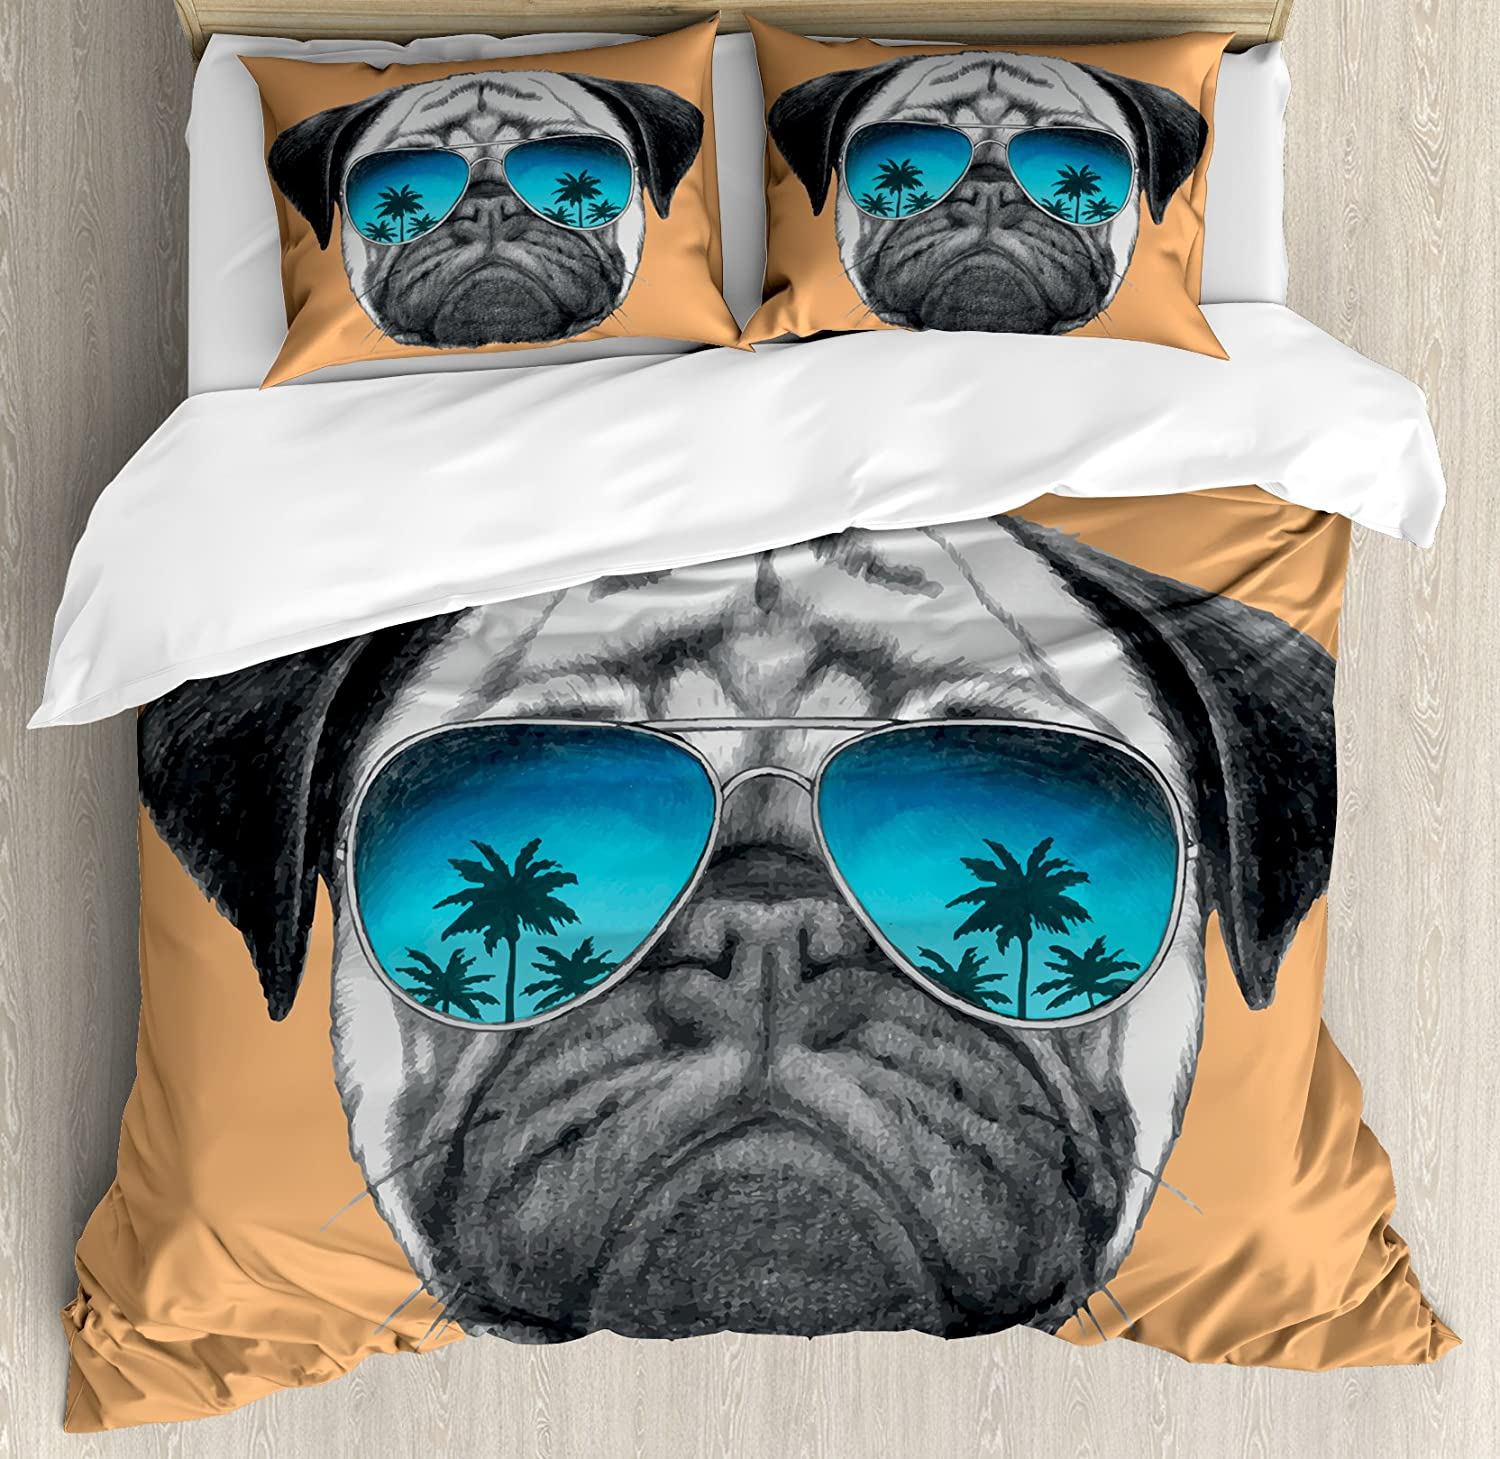 Ambesonne Pug Duvet Cover Set Queen Size, Dog with Reflecting Aviators Palm Trees Tropical Environment Cool Pet Animal, Decorative 3 Piece Bedding Set with 2 Pillow Shams, Black orange bluee